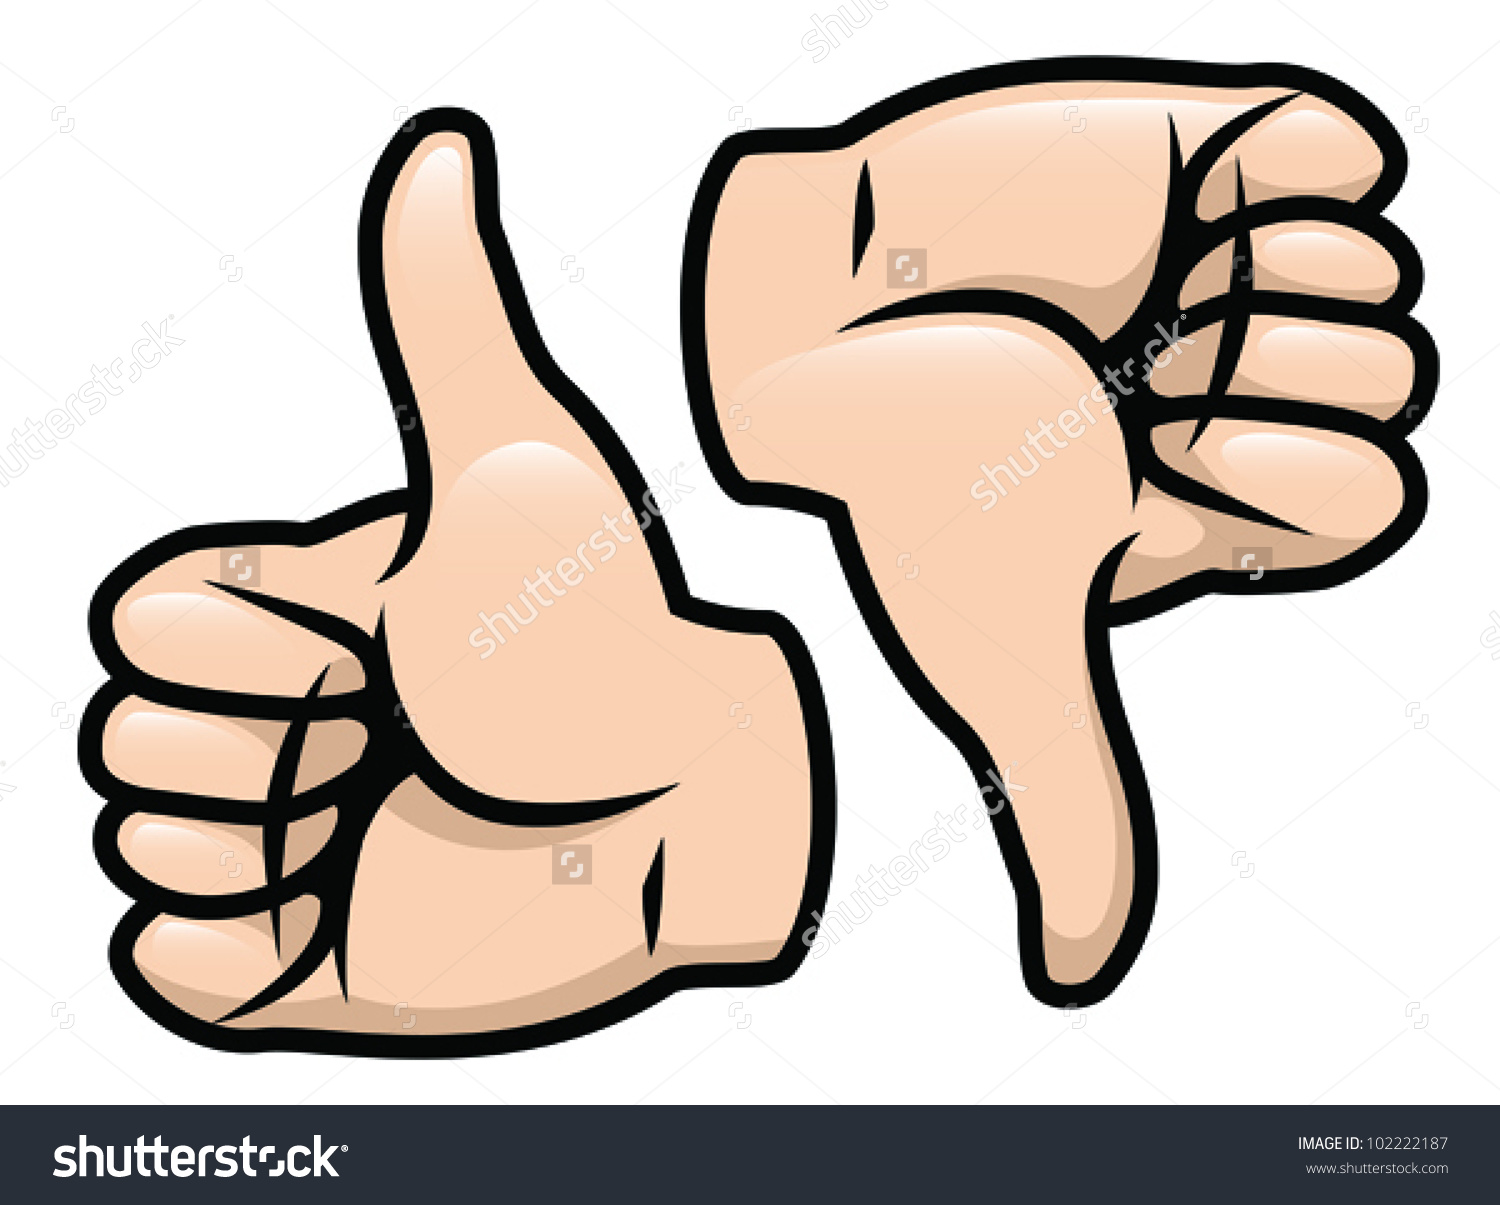 Thumbs down outline clipart image library Cartoon Vector Drawing Thumbs Thumbs Down Stock Vector 102222187 ... image library